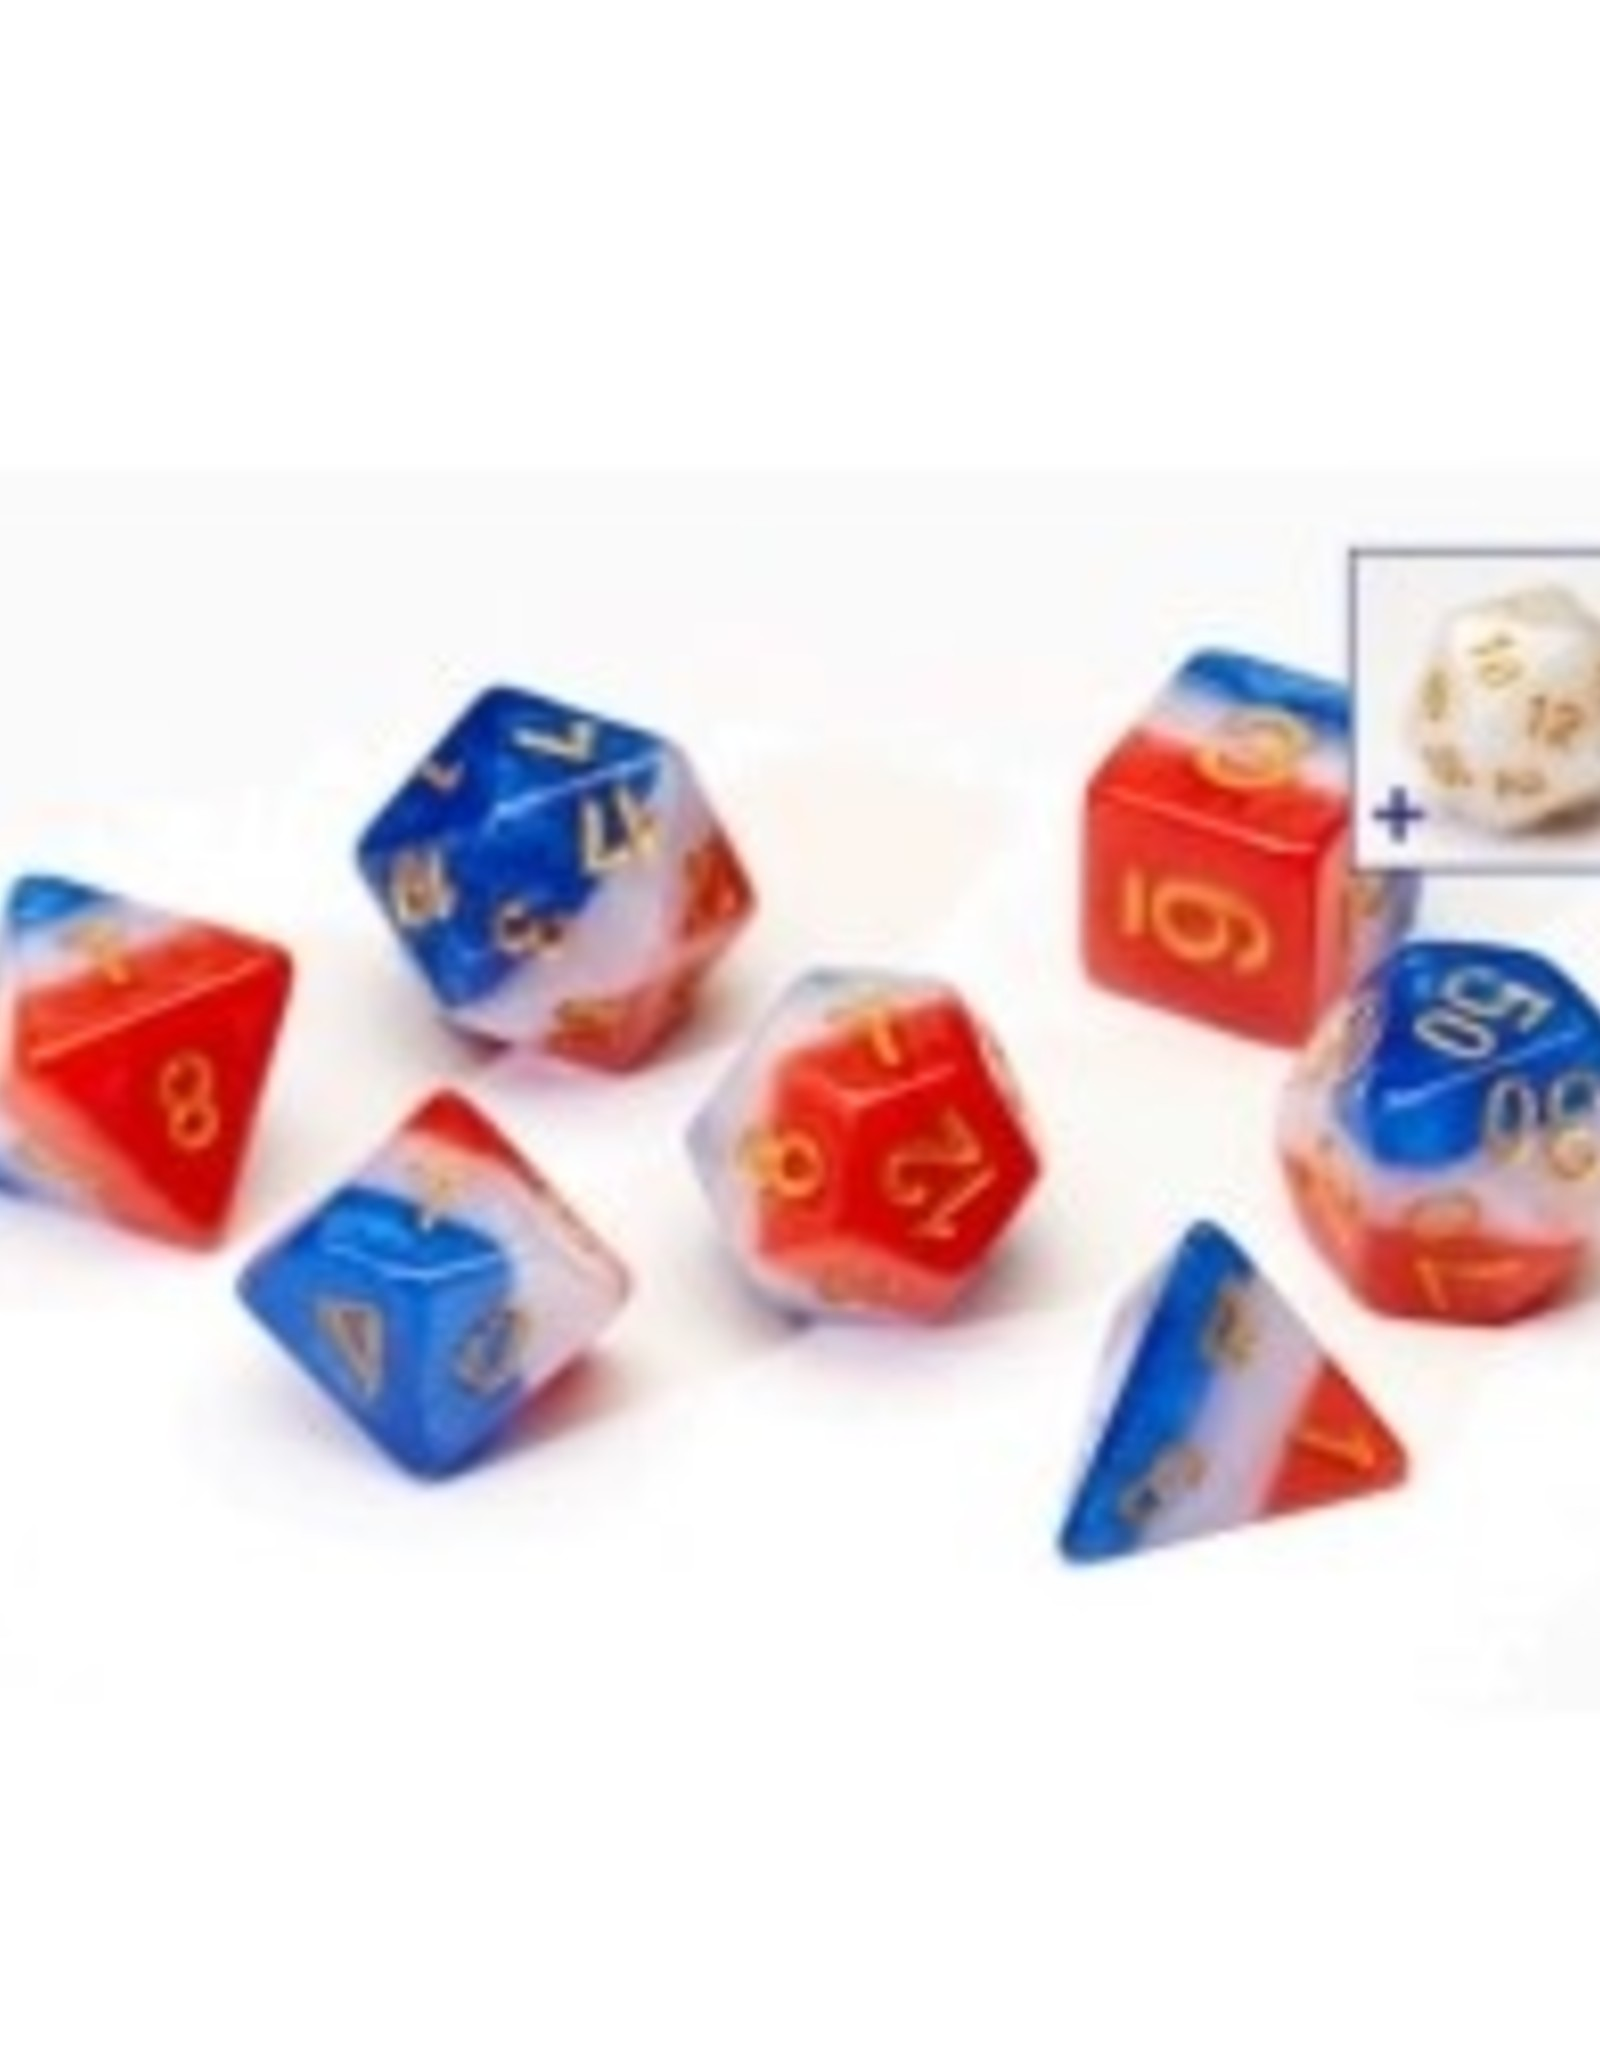 Sirius Dice Dice Block 7ct. - Red White And Blue Resin